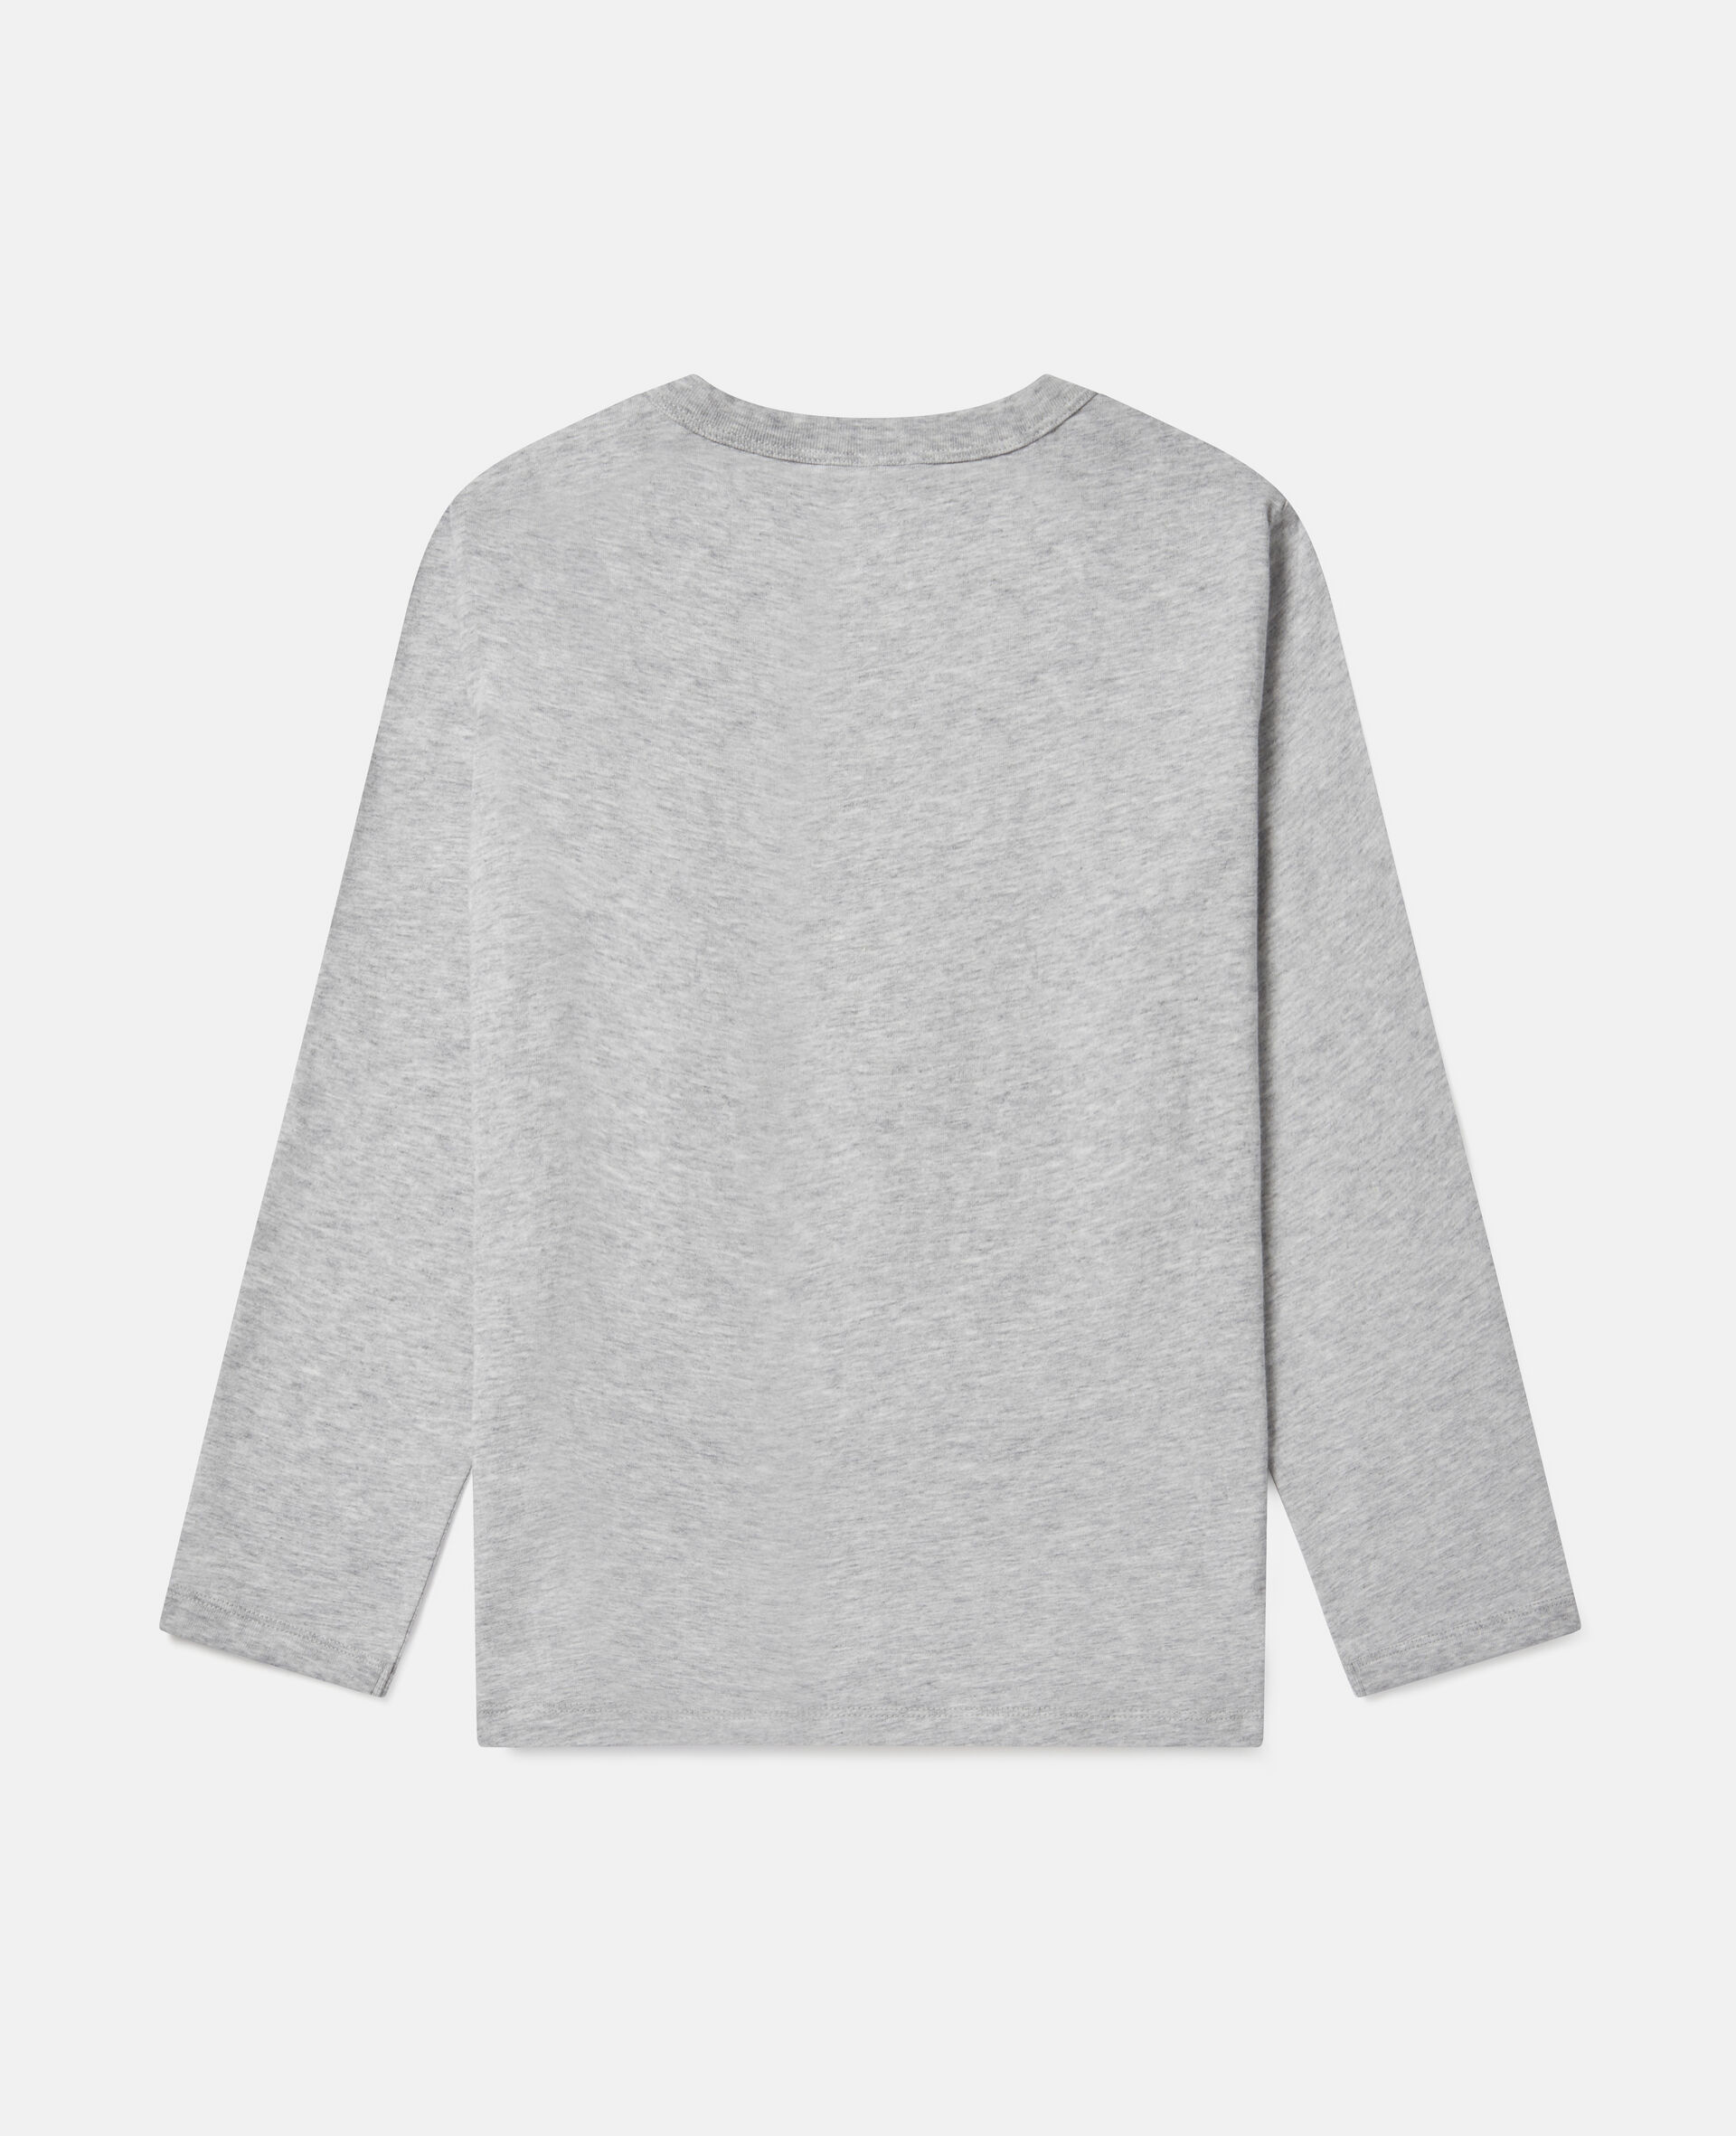 Oversized 'Stay Wild' Top-Grey-large image number 3